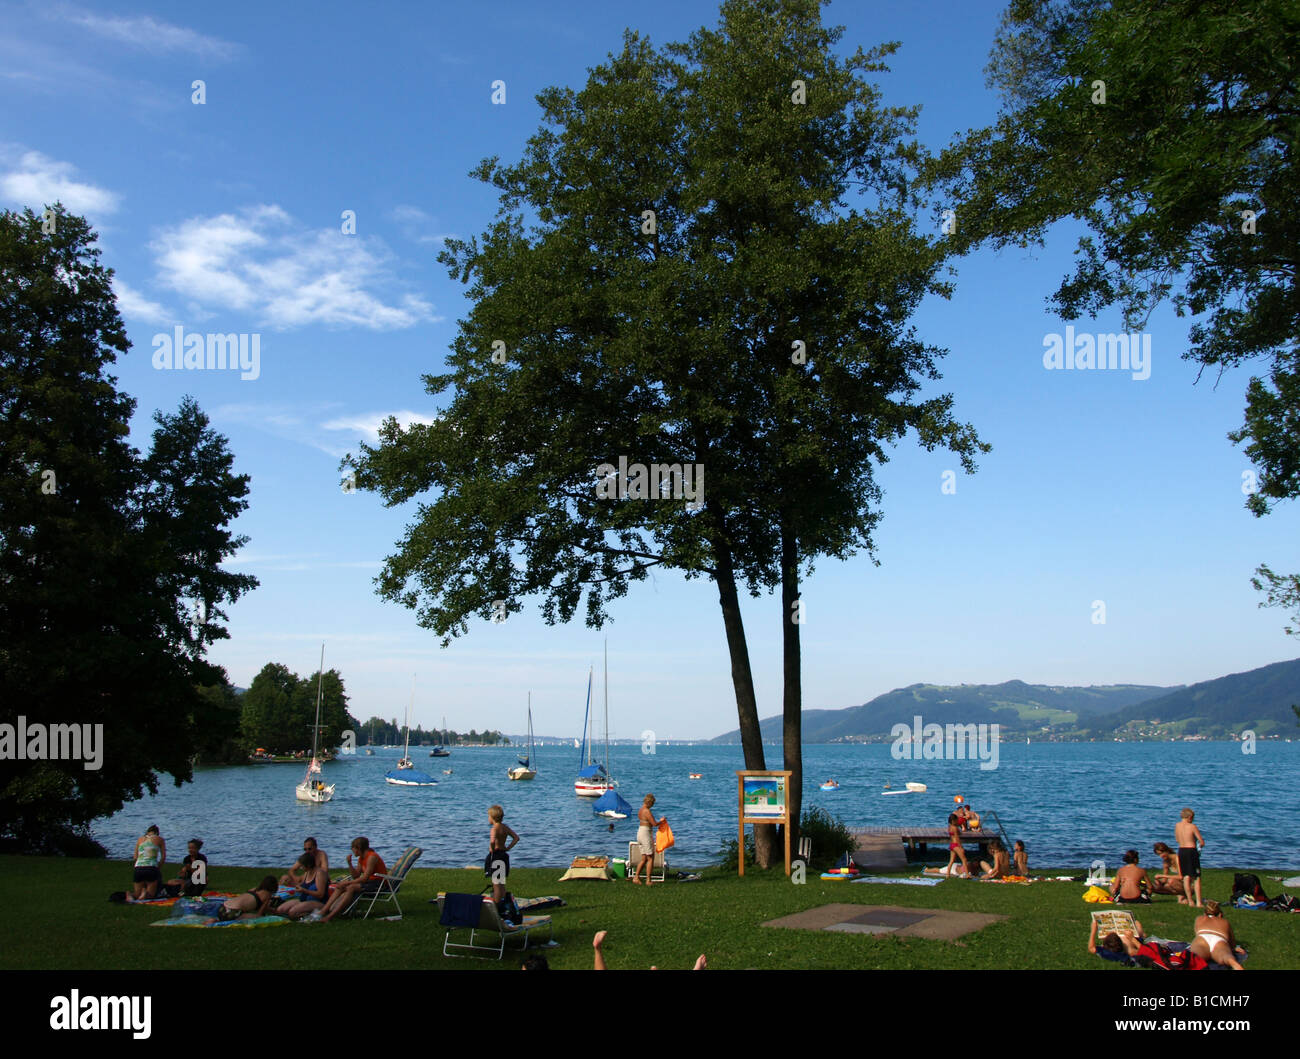 people in the sunbathing area at lake Attersee, Austria, Upper Austria, Attersee - Stock Image